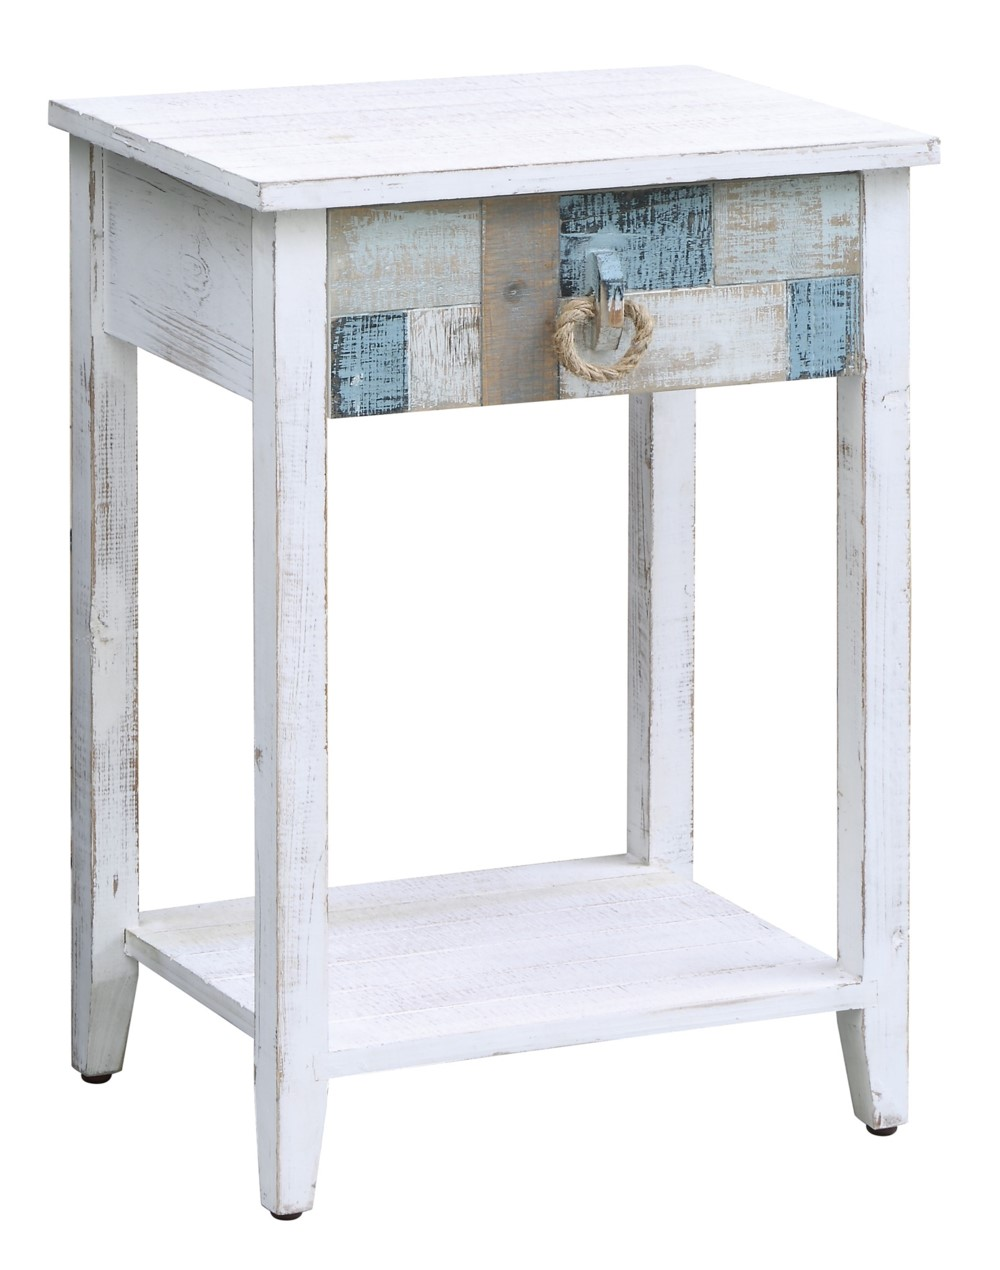 south shore accent table one drawer gajah home oriental bedside lamps dale tiffany northlake lamp porcelain contemporary marble coffee living room sets decoration pieces for